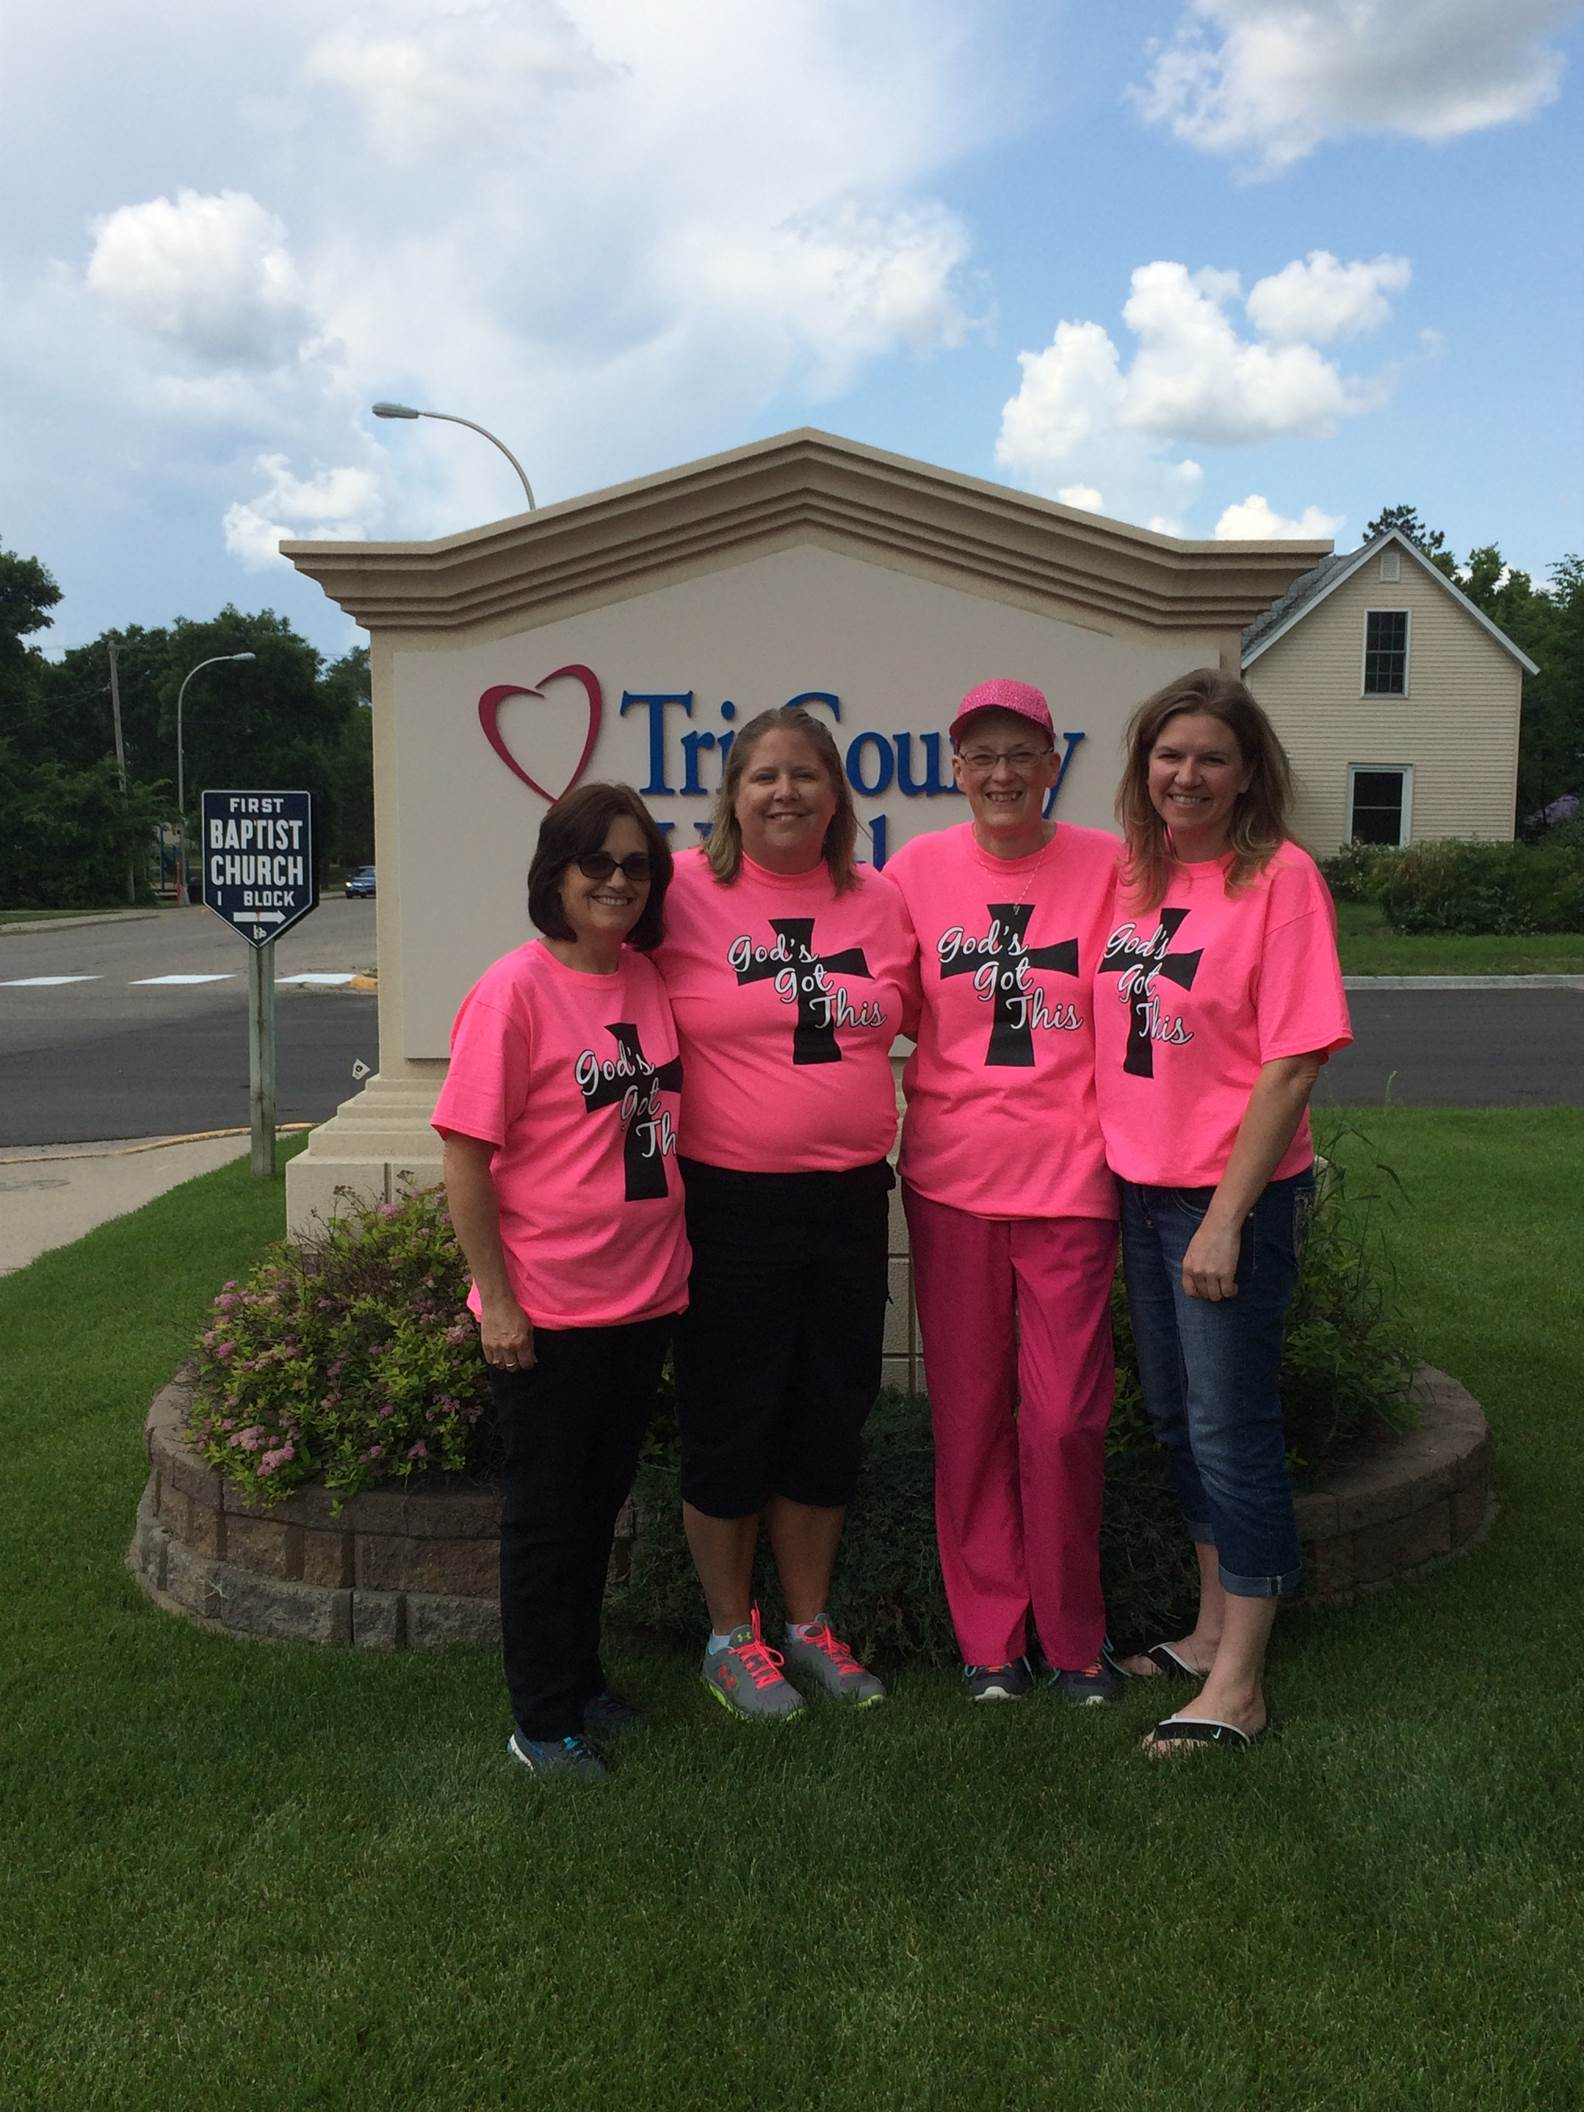 Deb with her co-workers wearing the t-shirts they had made for a fundraiser to help her offset her medical expenses.